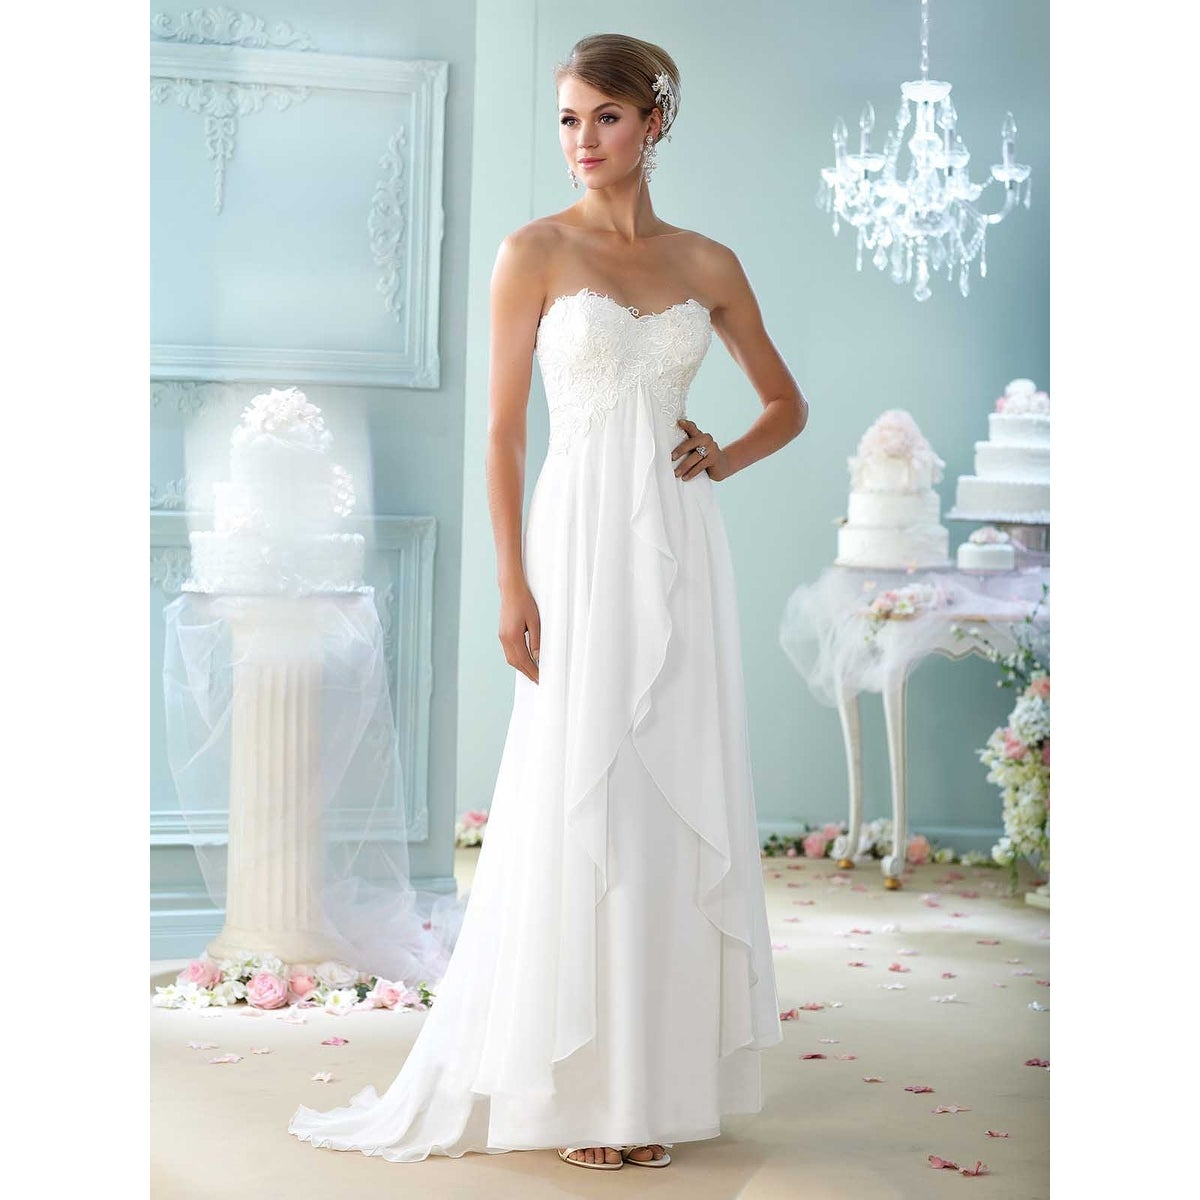 Wedding Dresses For Less | Overstock